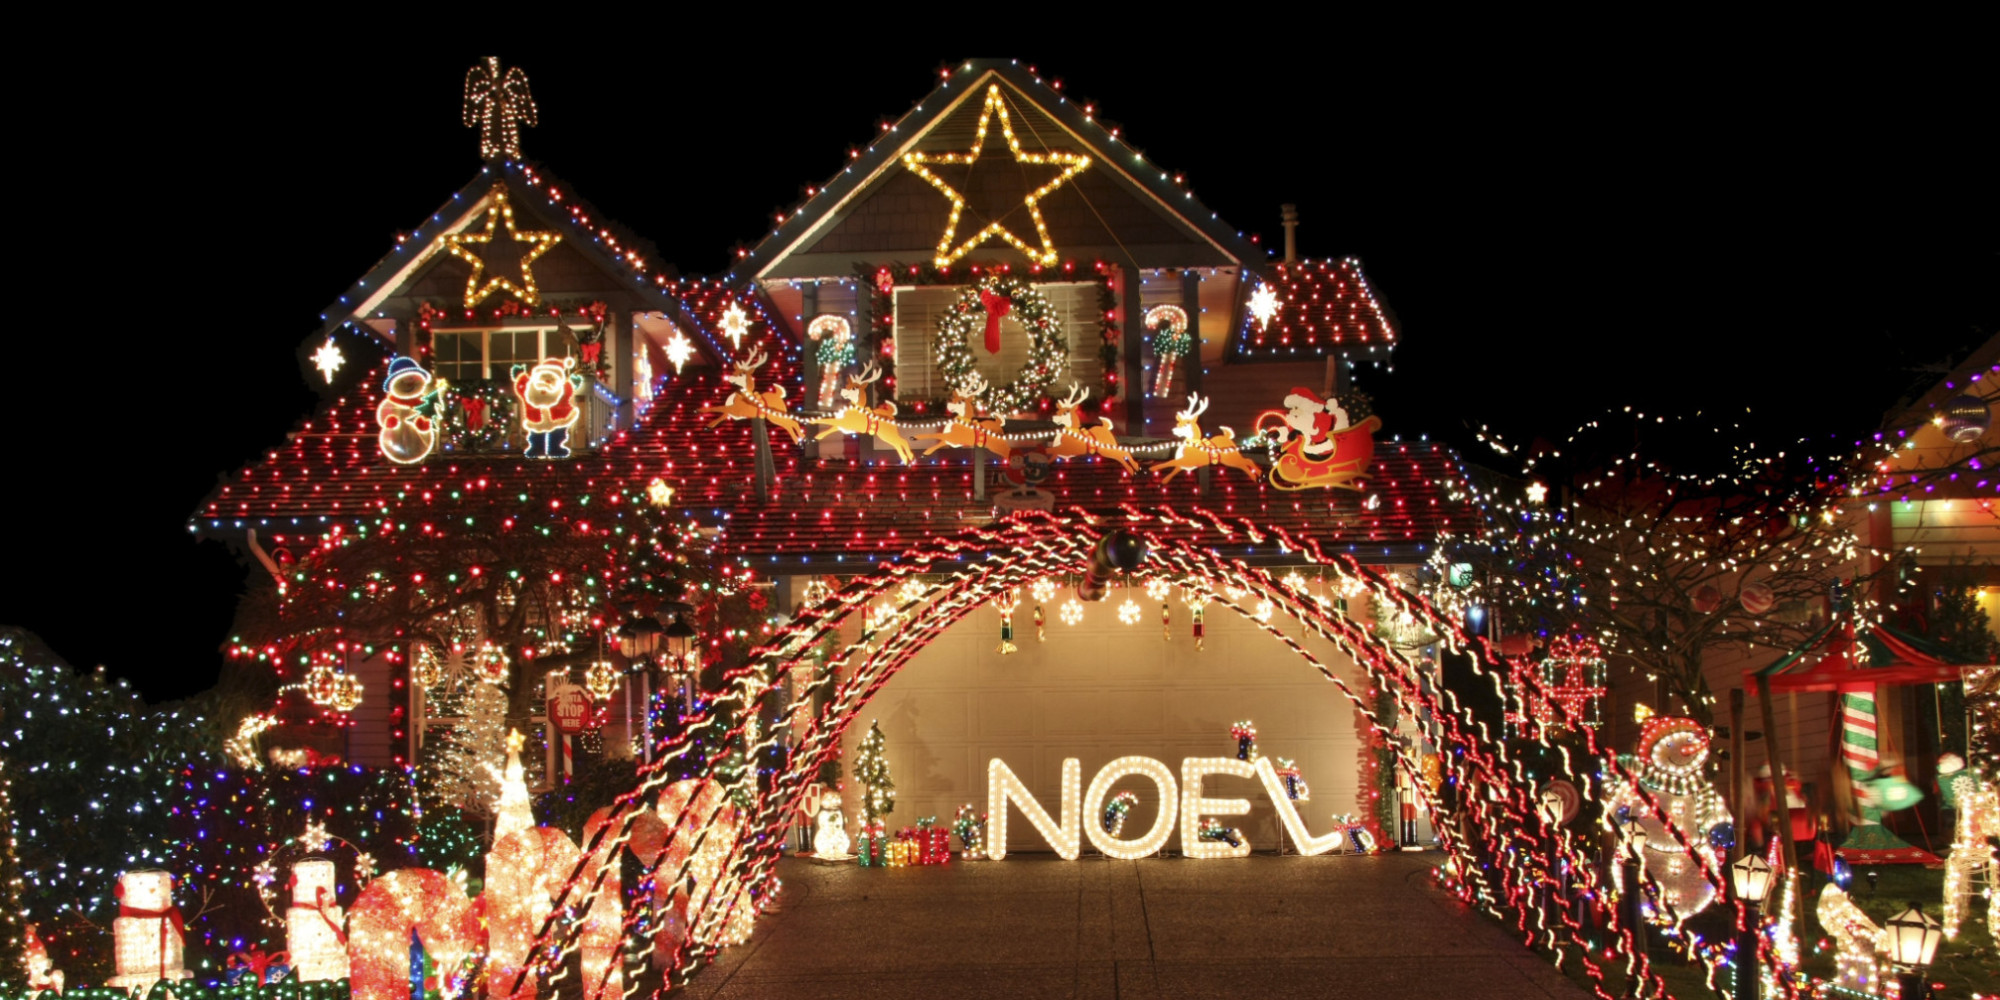 O CHRISTMAS LIGHTS HOUSE Facebook